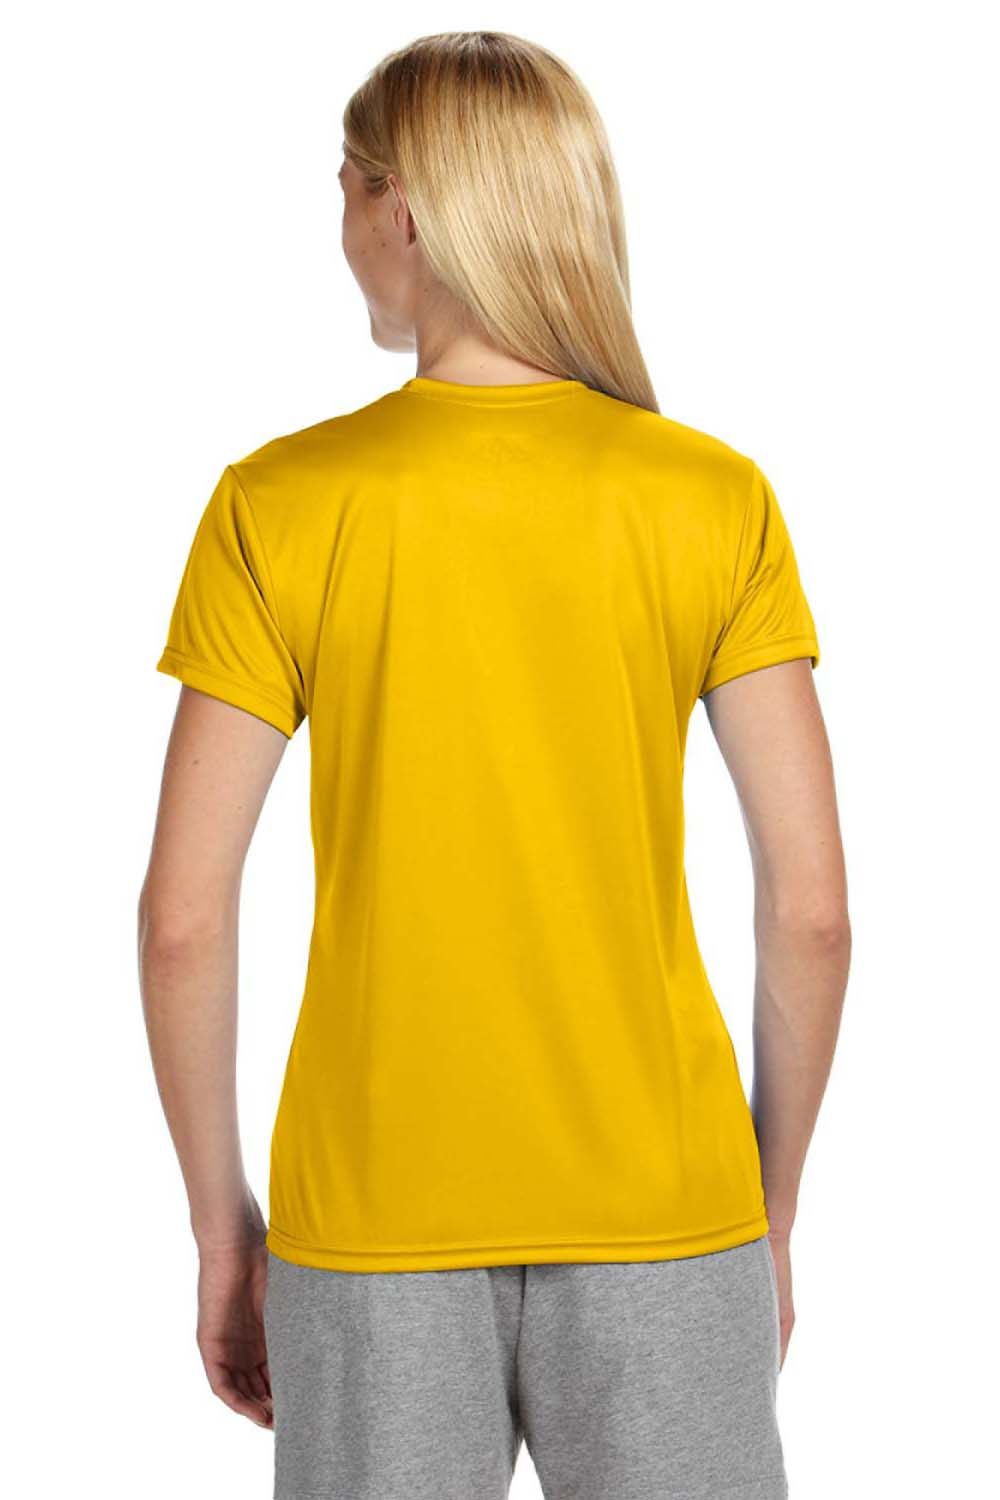 A4 NW3201 Womens Cooling Performance Moisture Wicking Short Sleeve Crewneck T-Shirt Gold Back